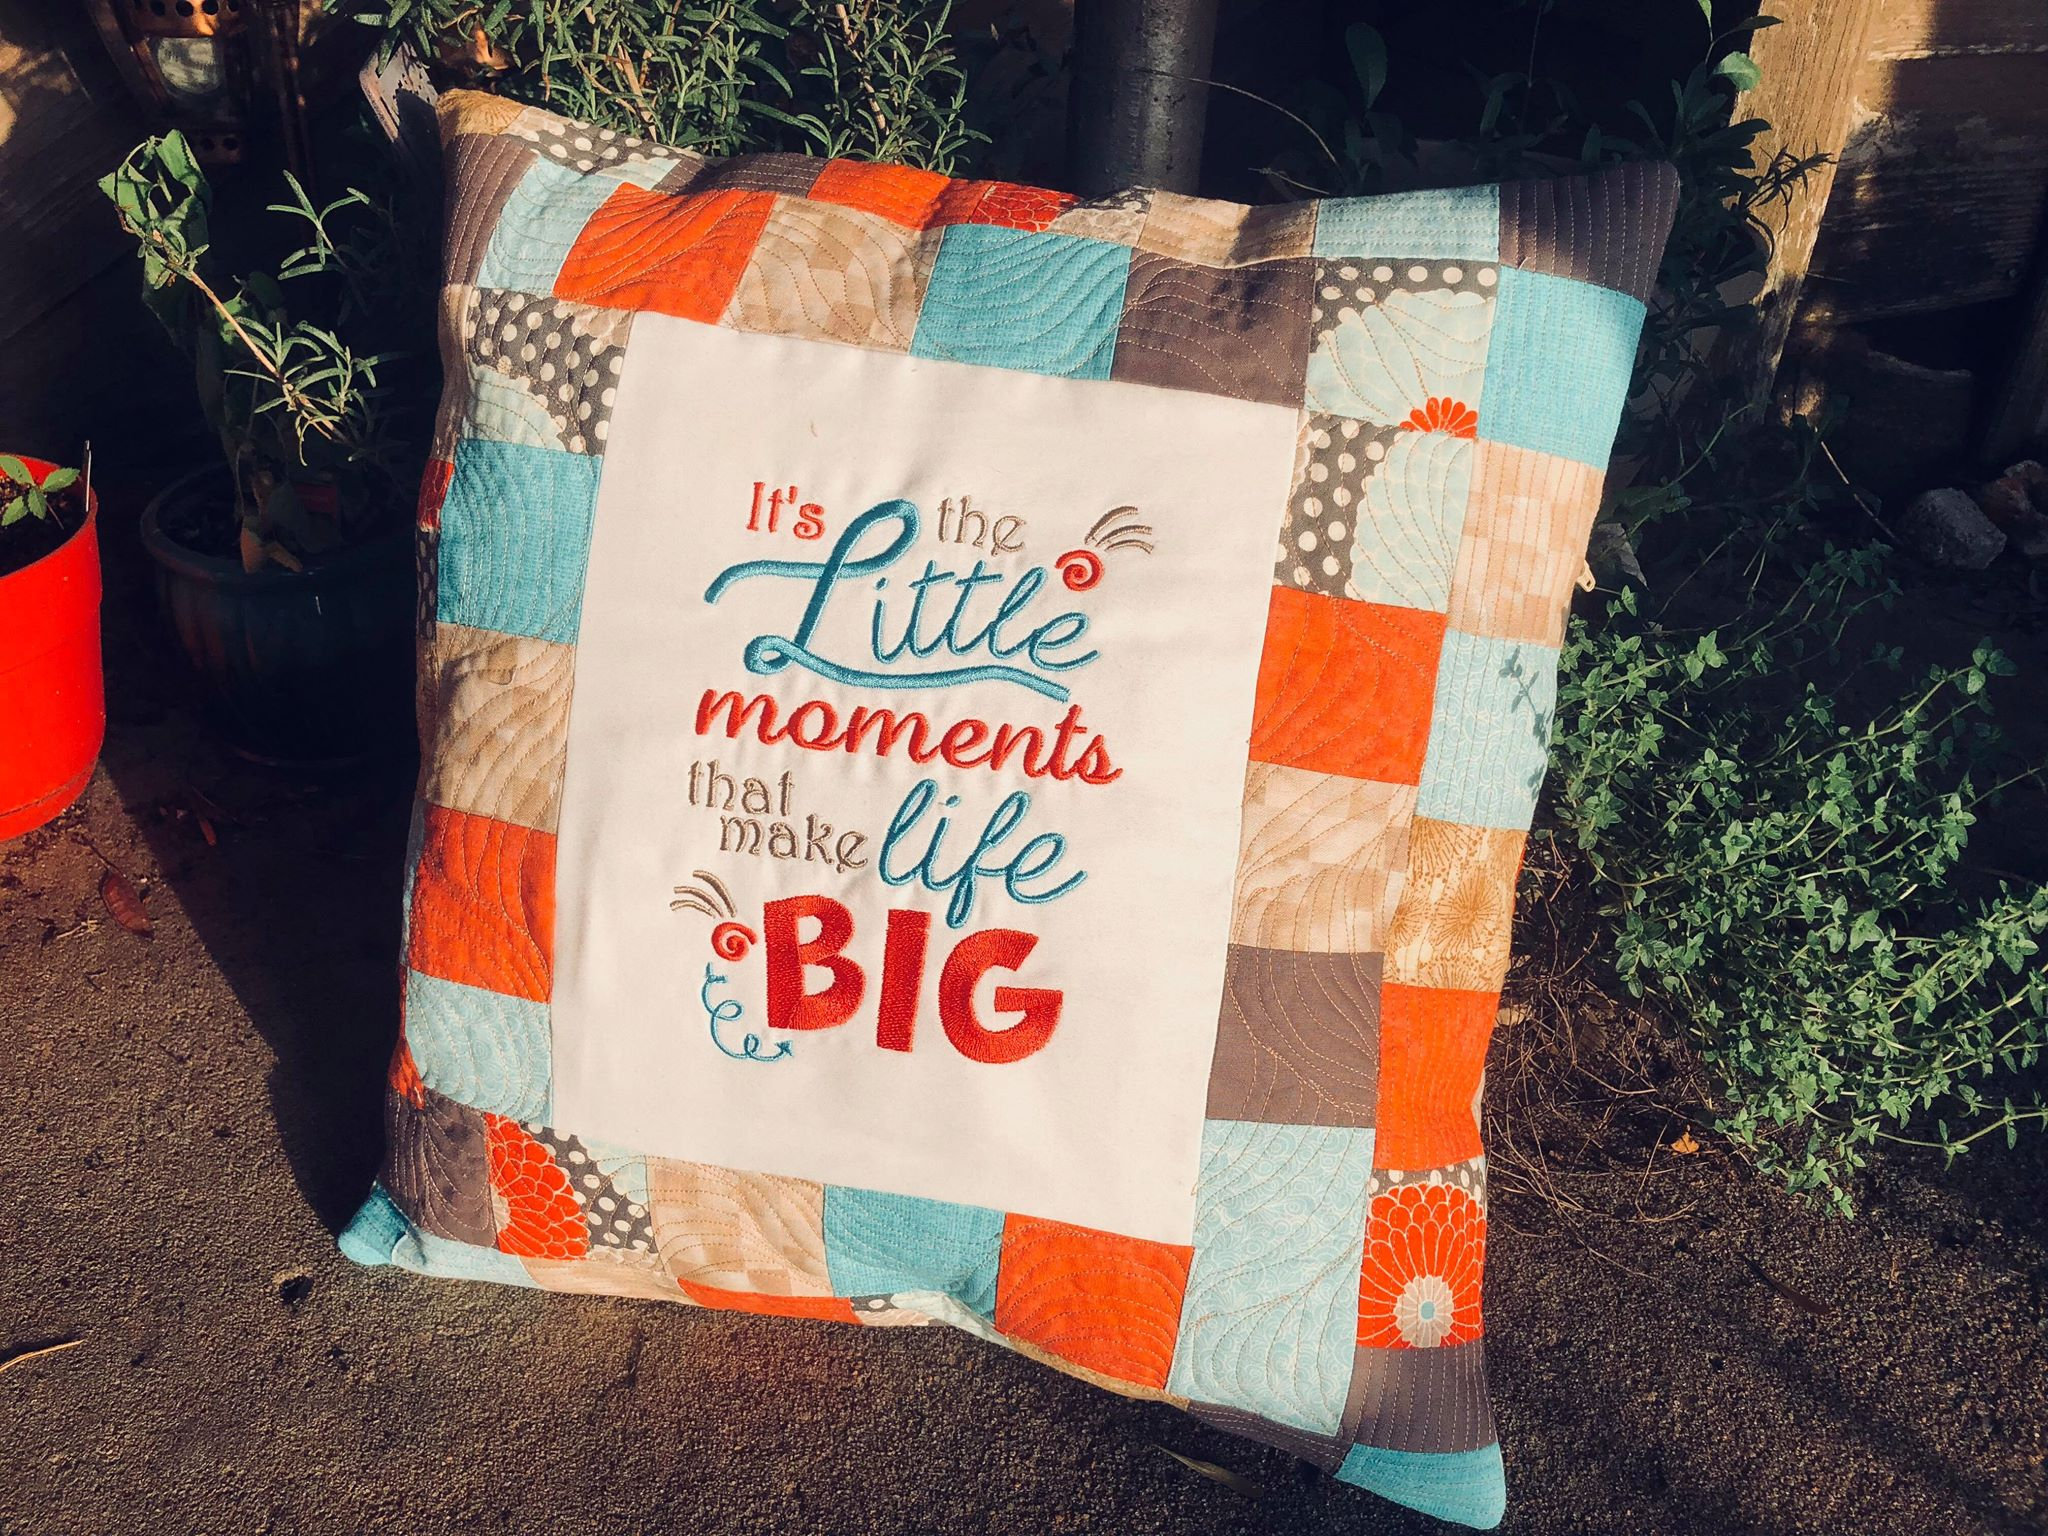 It's the little moments that make life big - reading pillow saying 5x7